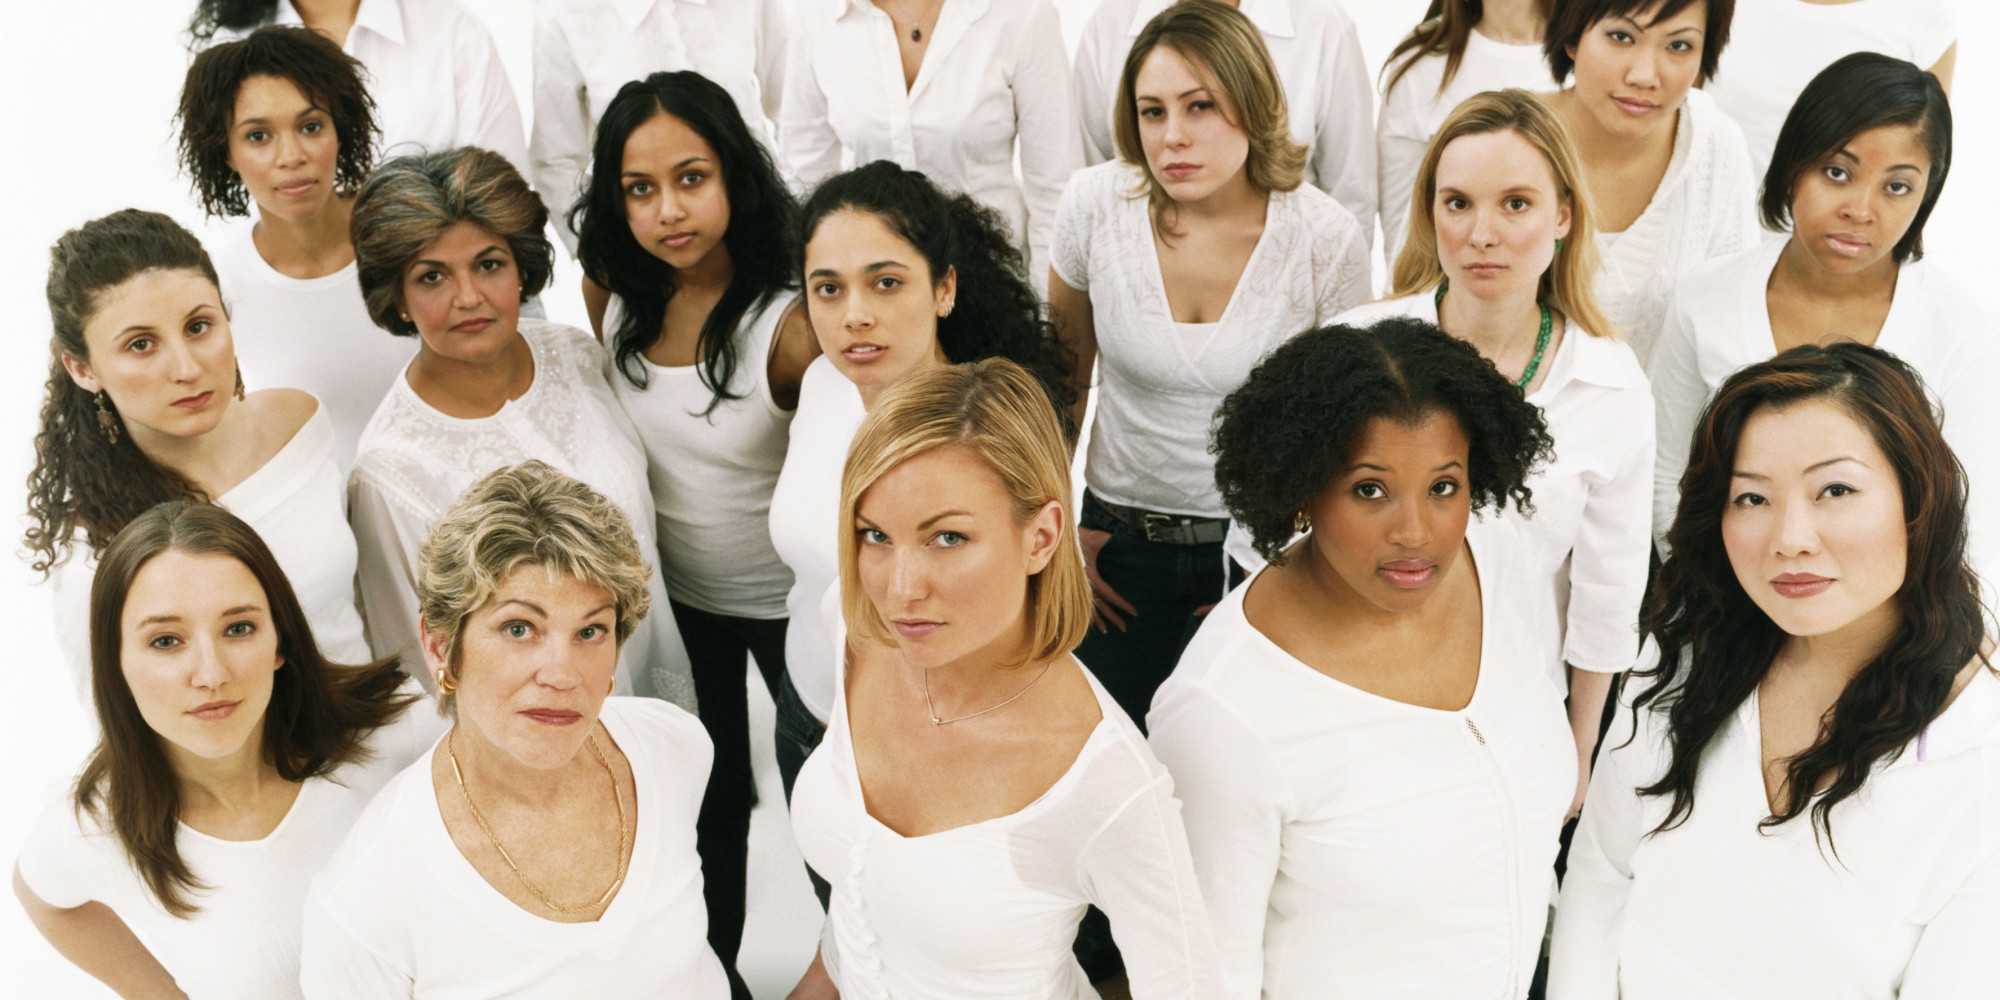 Studio Portrait of a Mixed Age, Multiethnic, Large Group of Displeased Women Wearing White Tops